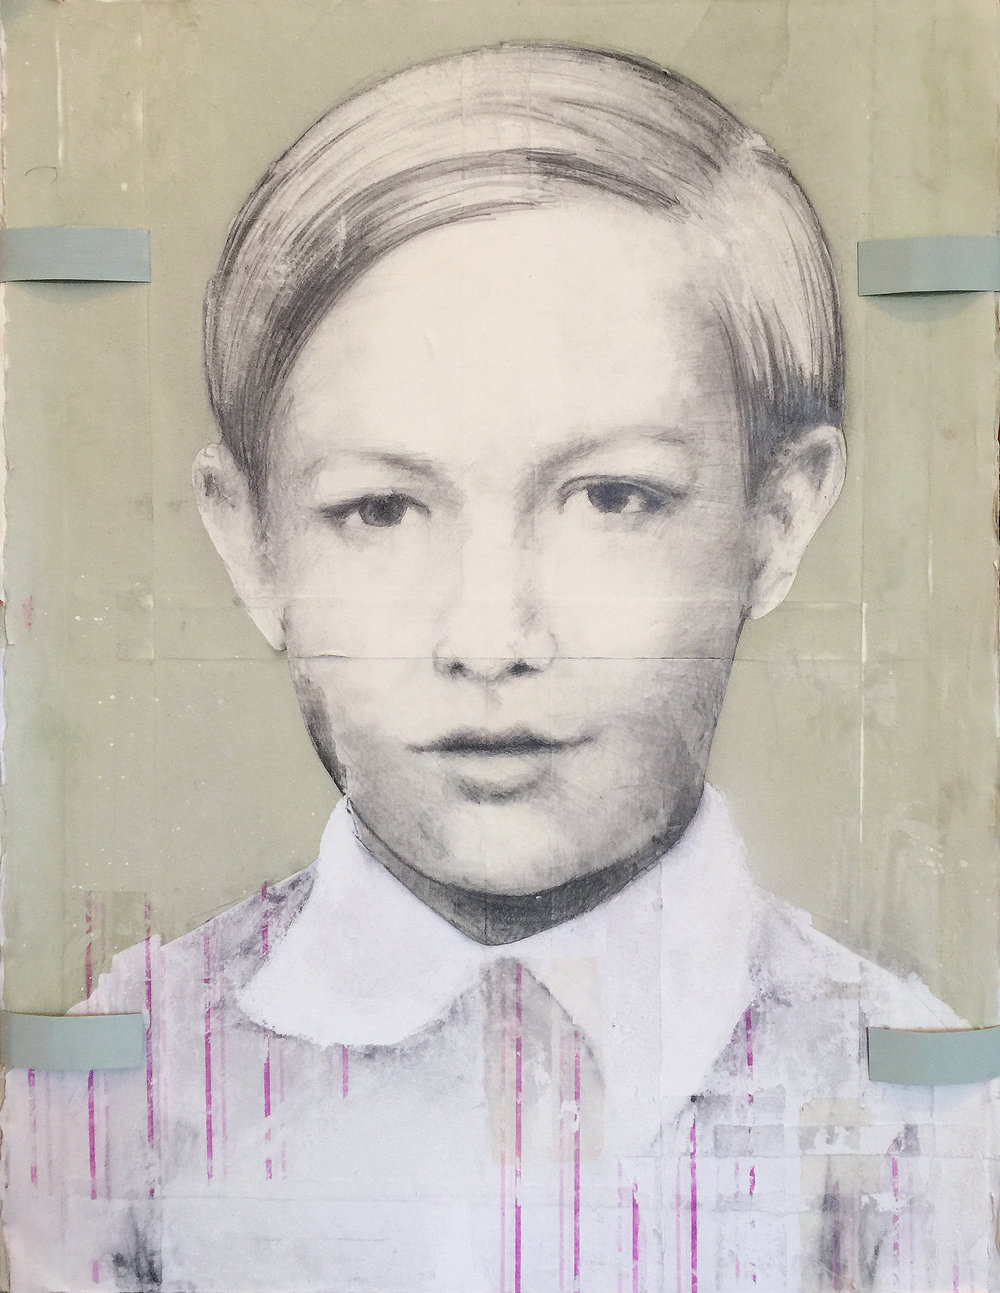 Warhol, 2016, 36 x 24 inches, Mixed media on board